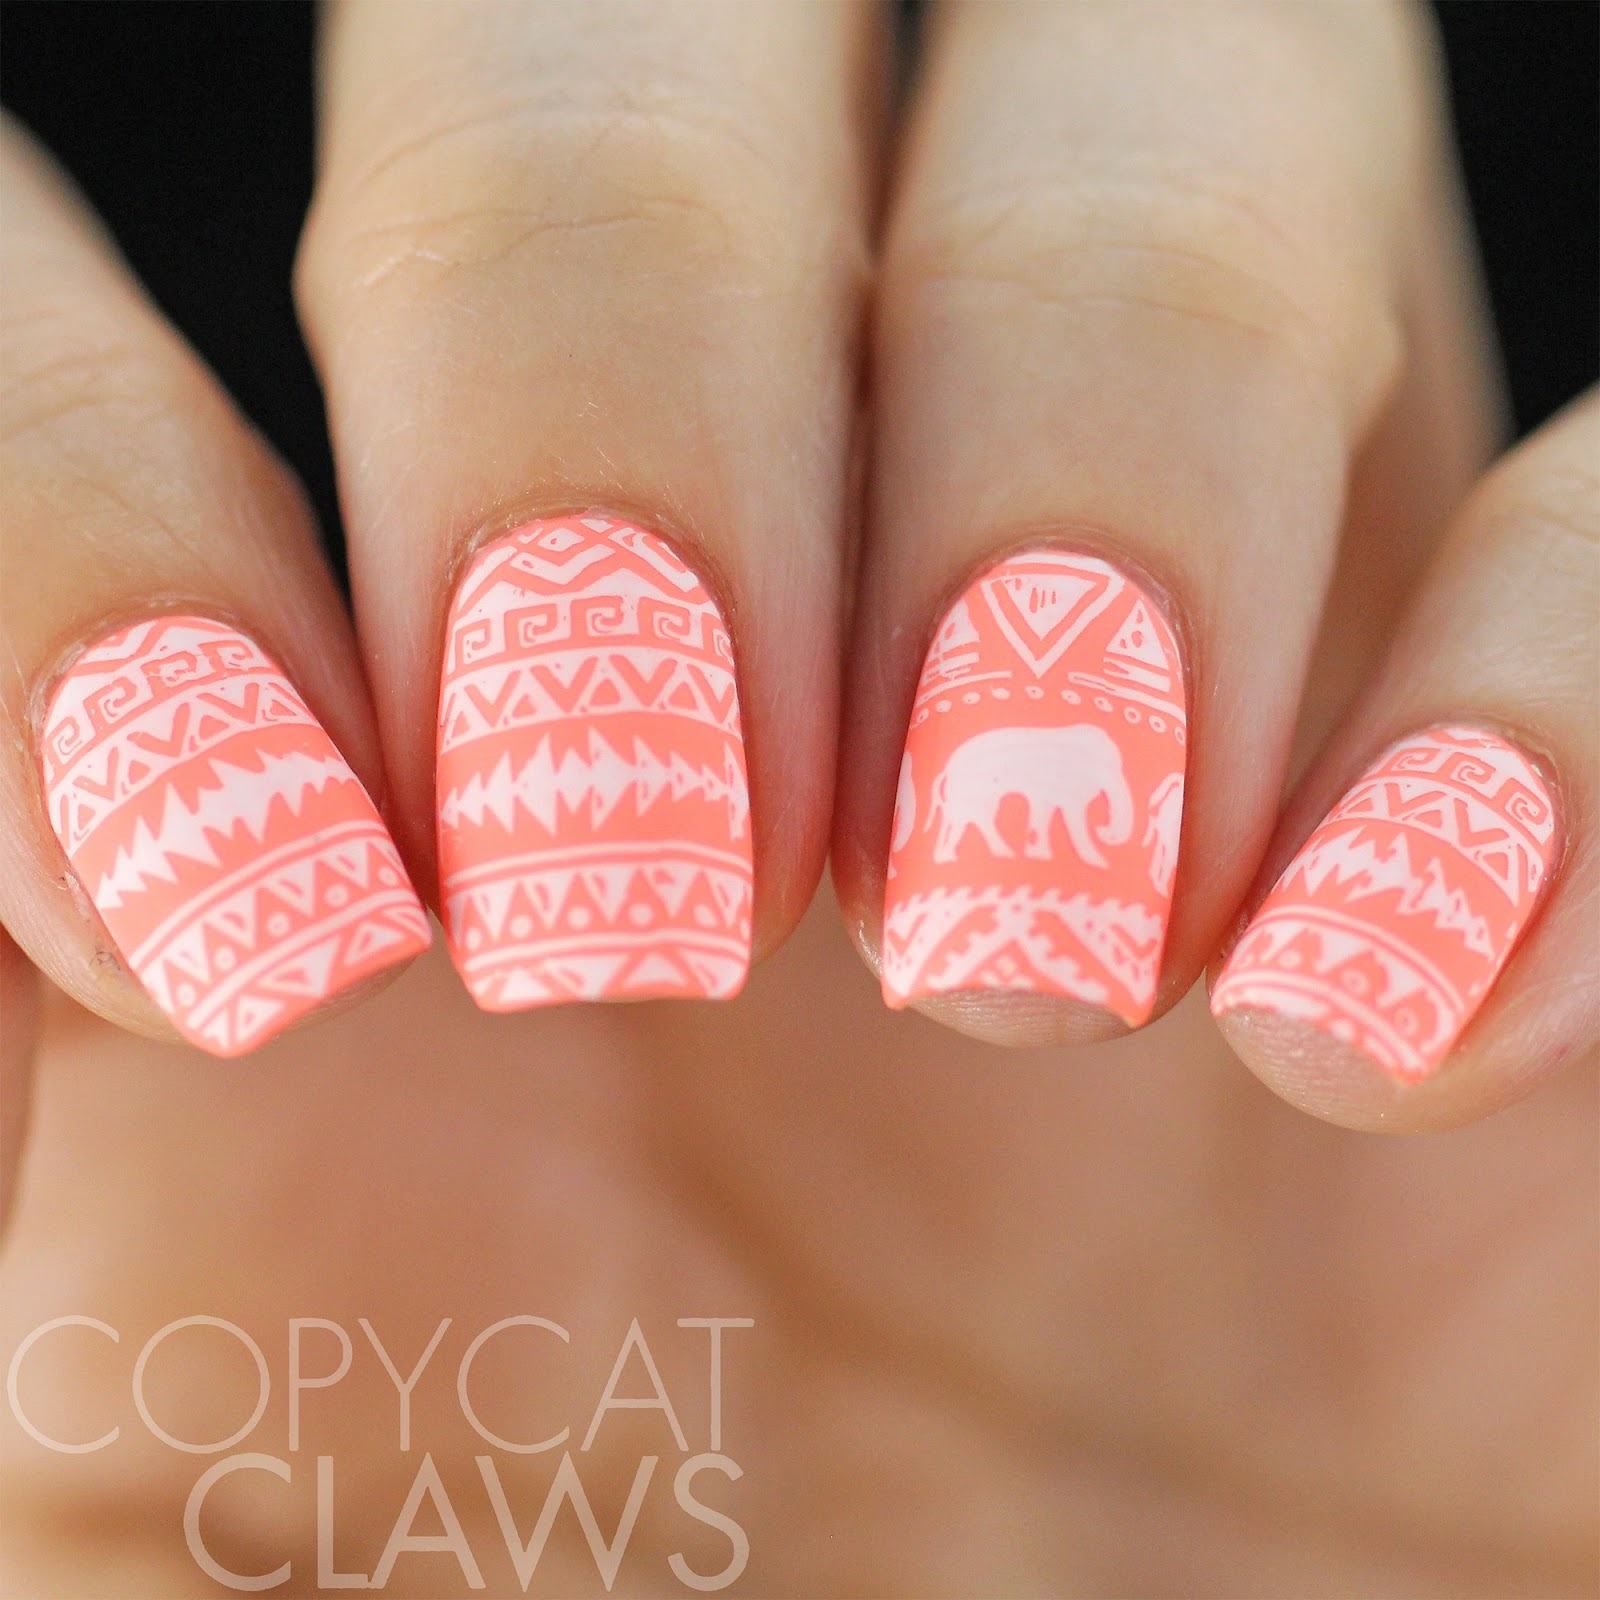 Copycat Claws 40 Great Nail Art Ideas Coral And White